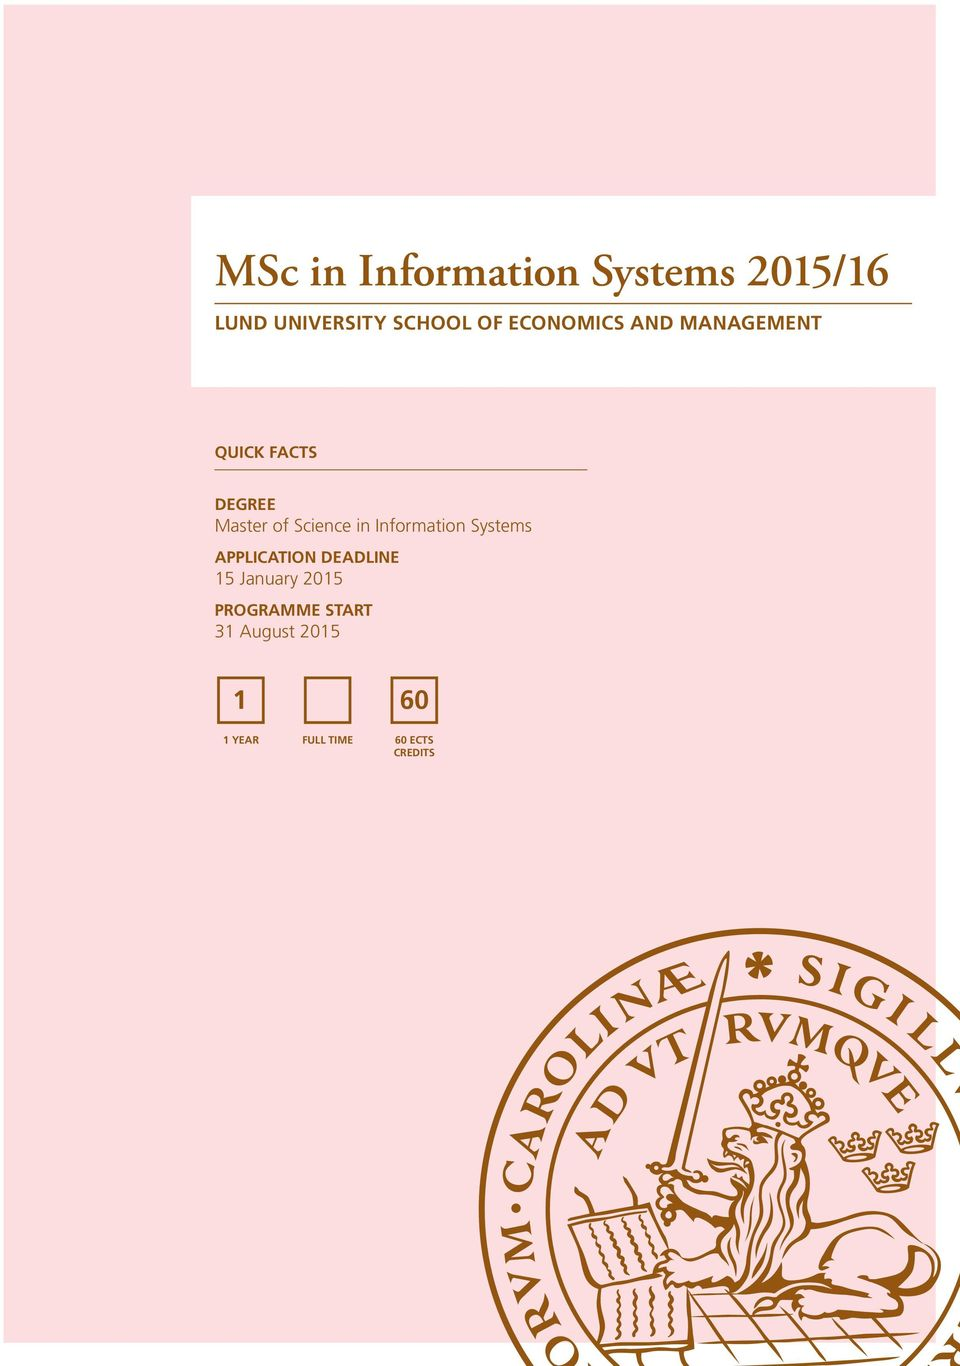 in Information Systems APPLICATION DEADLINE 15 January 2015